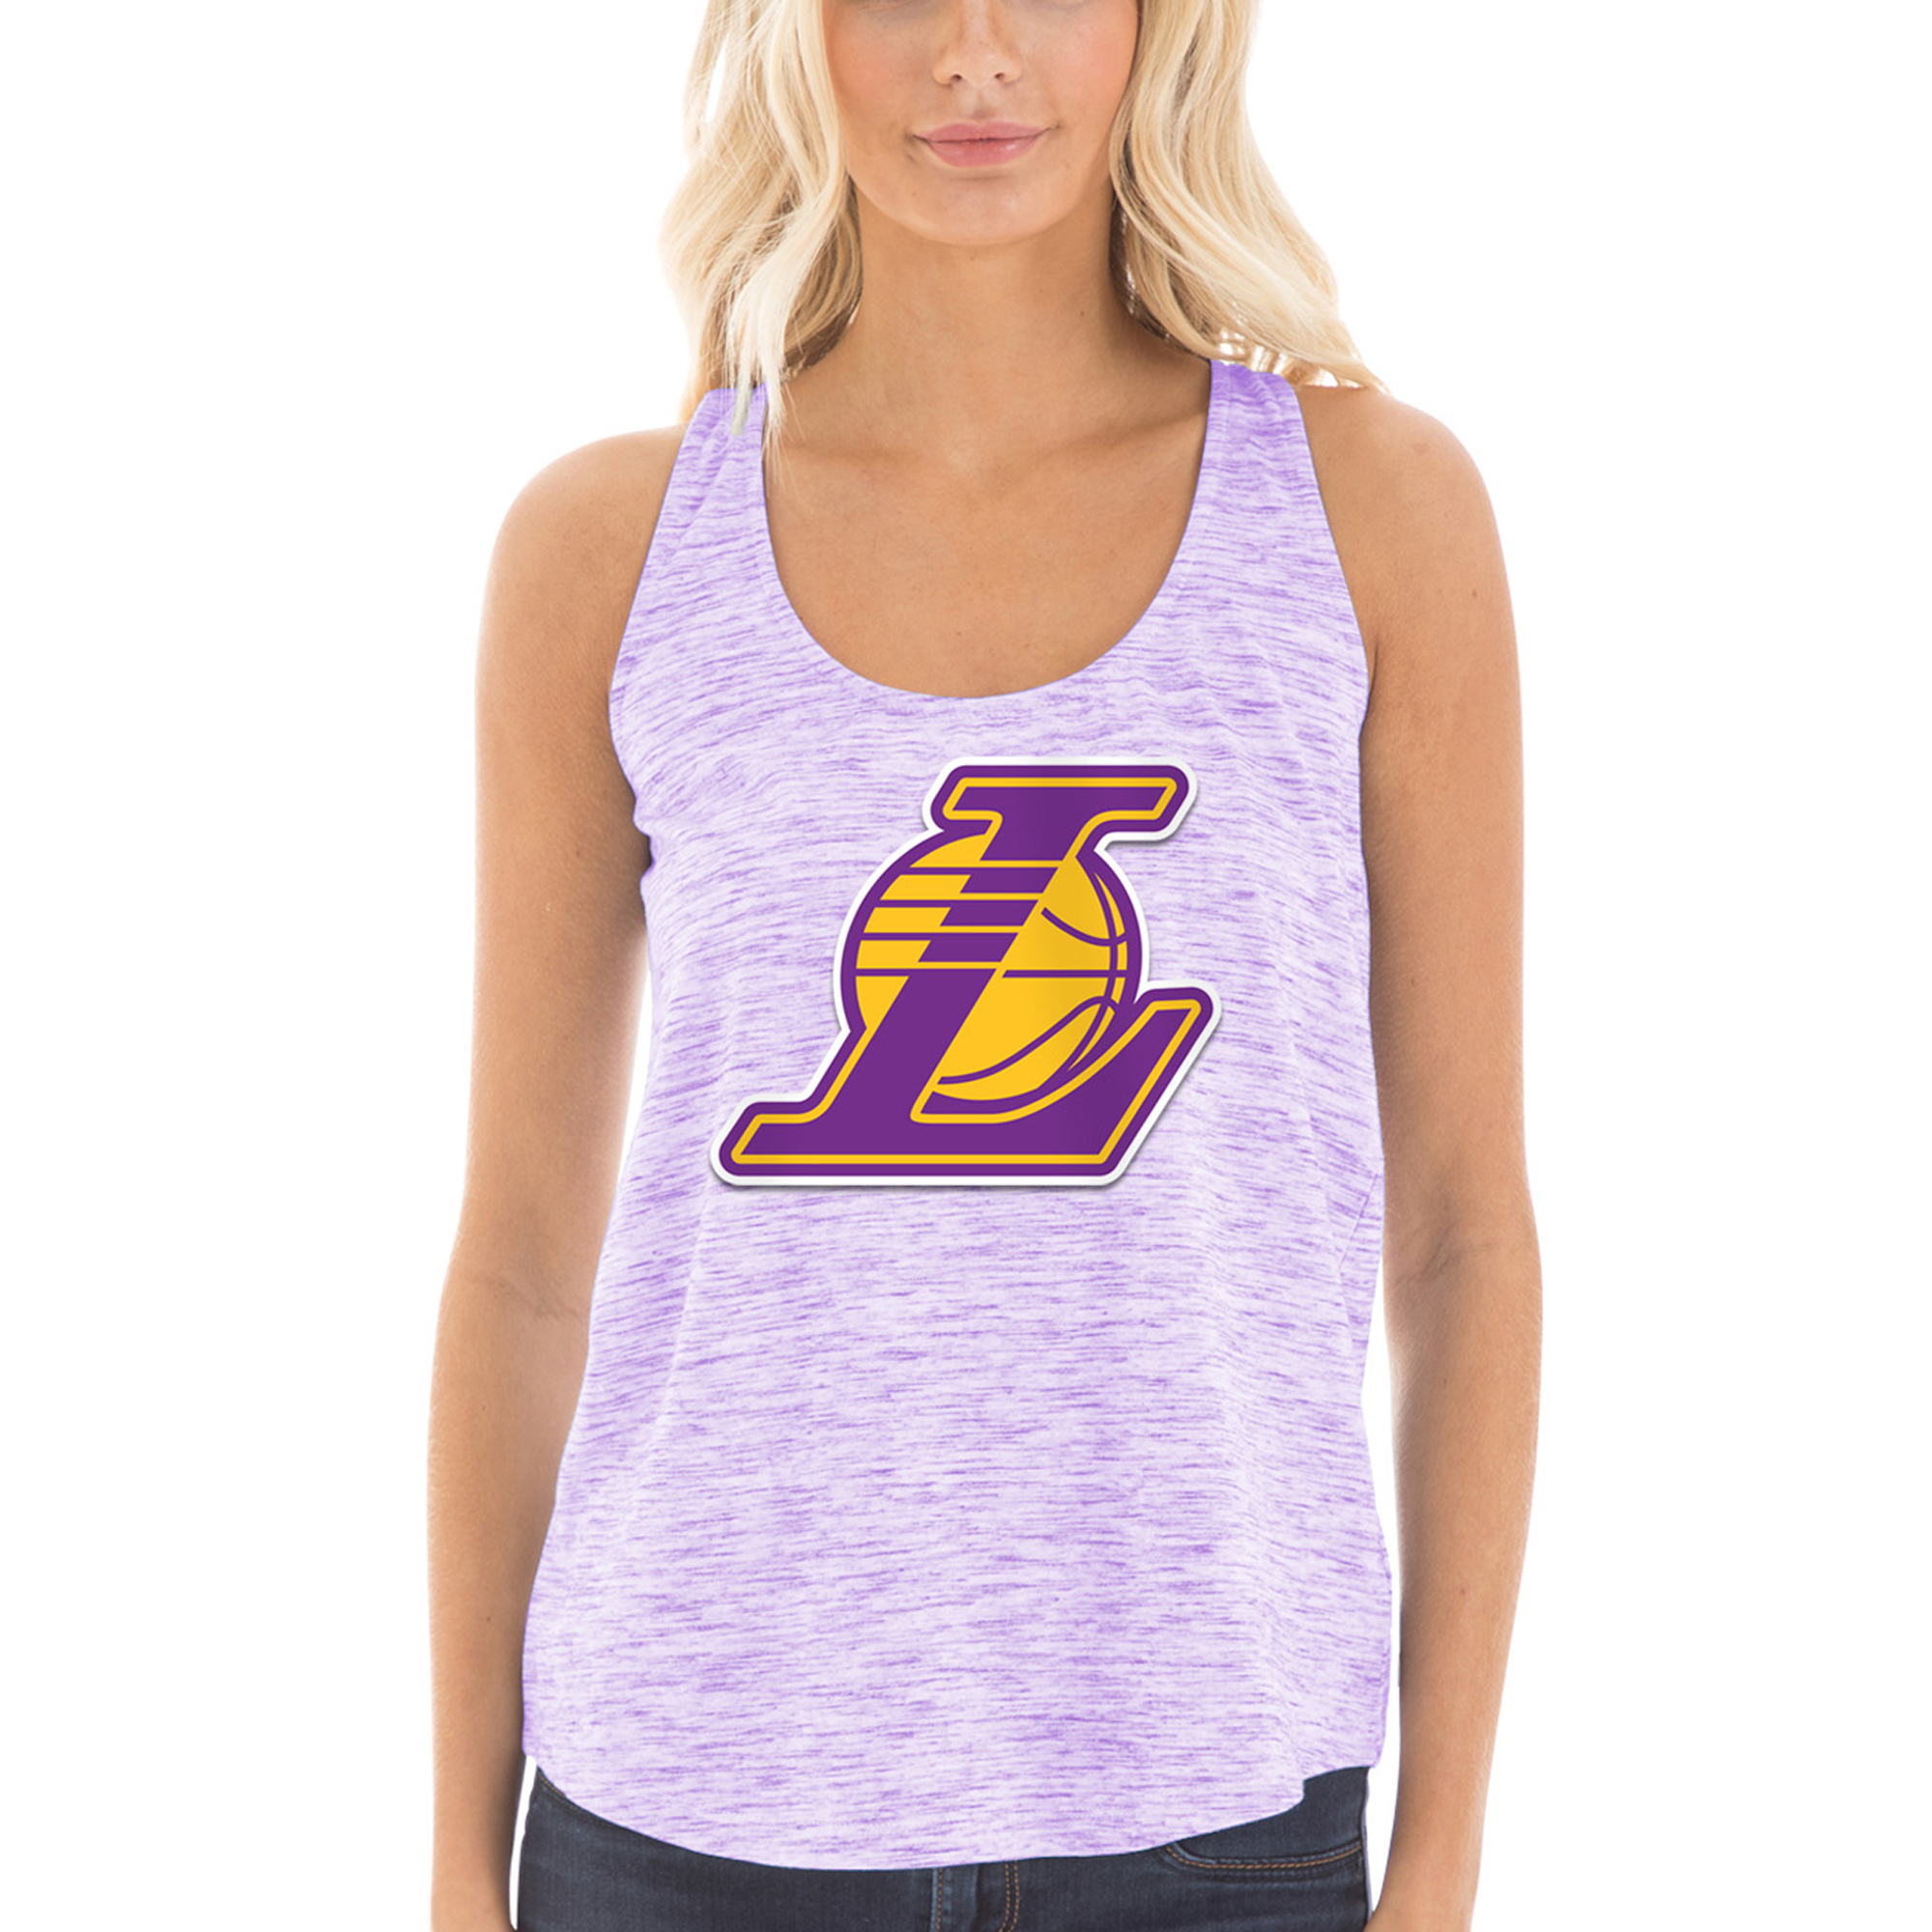 Los Angeles Lakers New Era Women's Space Dye Jersey Racerback Tank Top - Purple